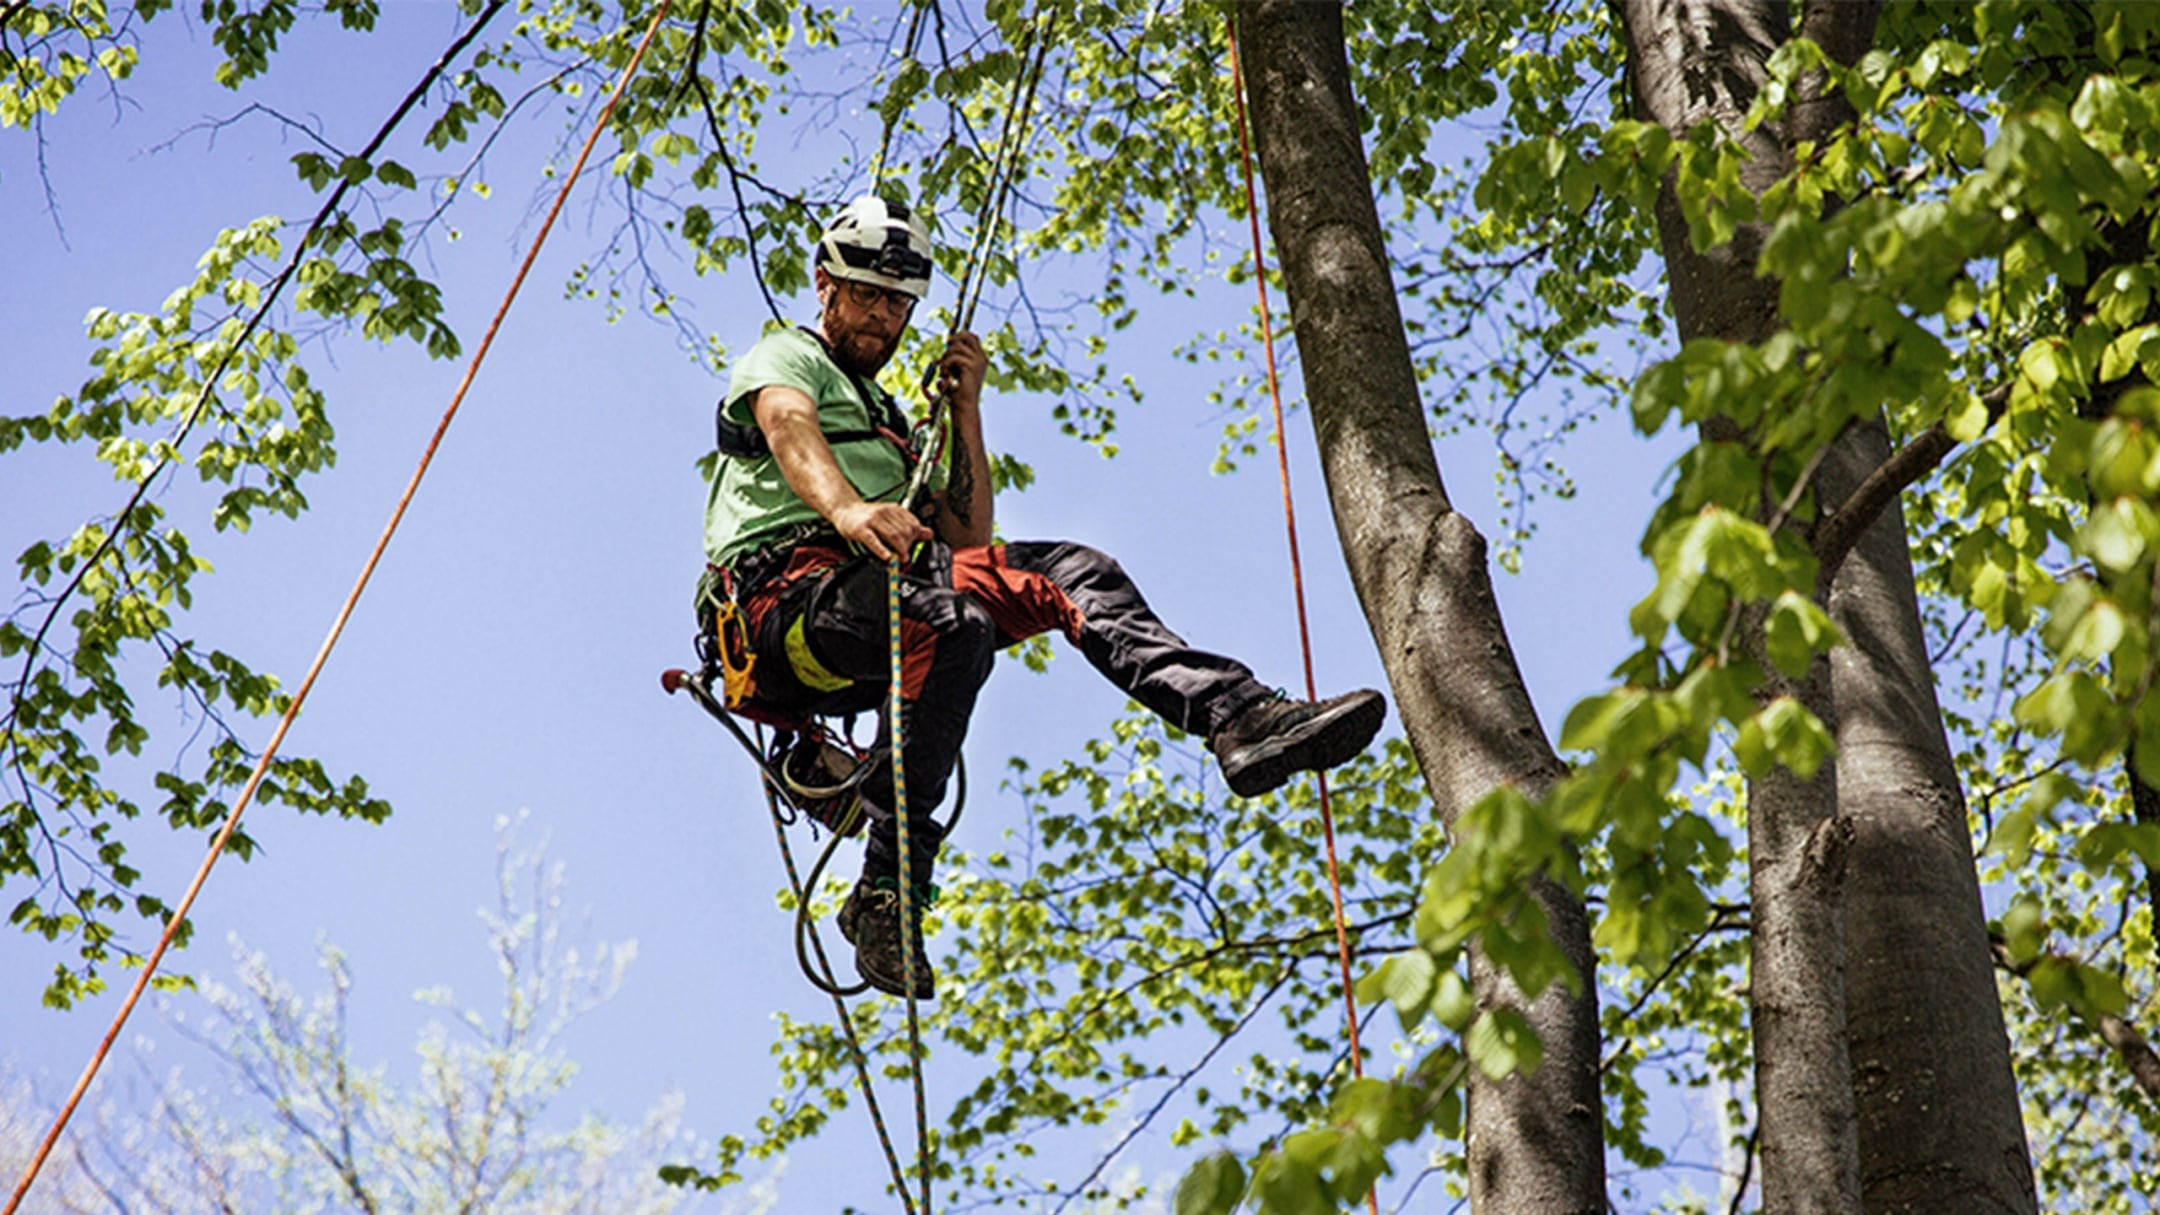 A man in climbing gear suspended on ropes in a tree